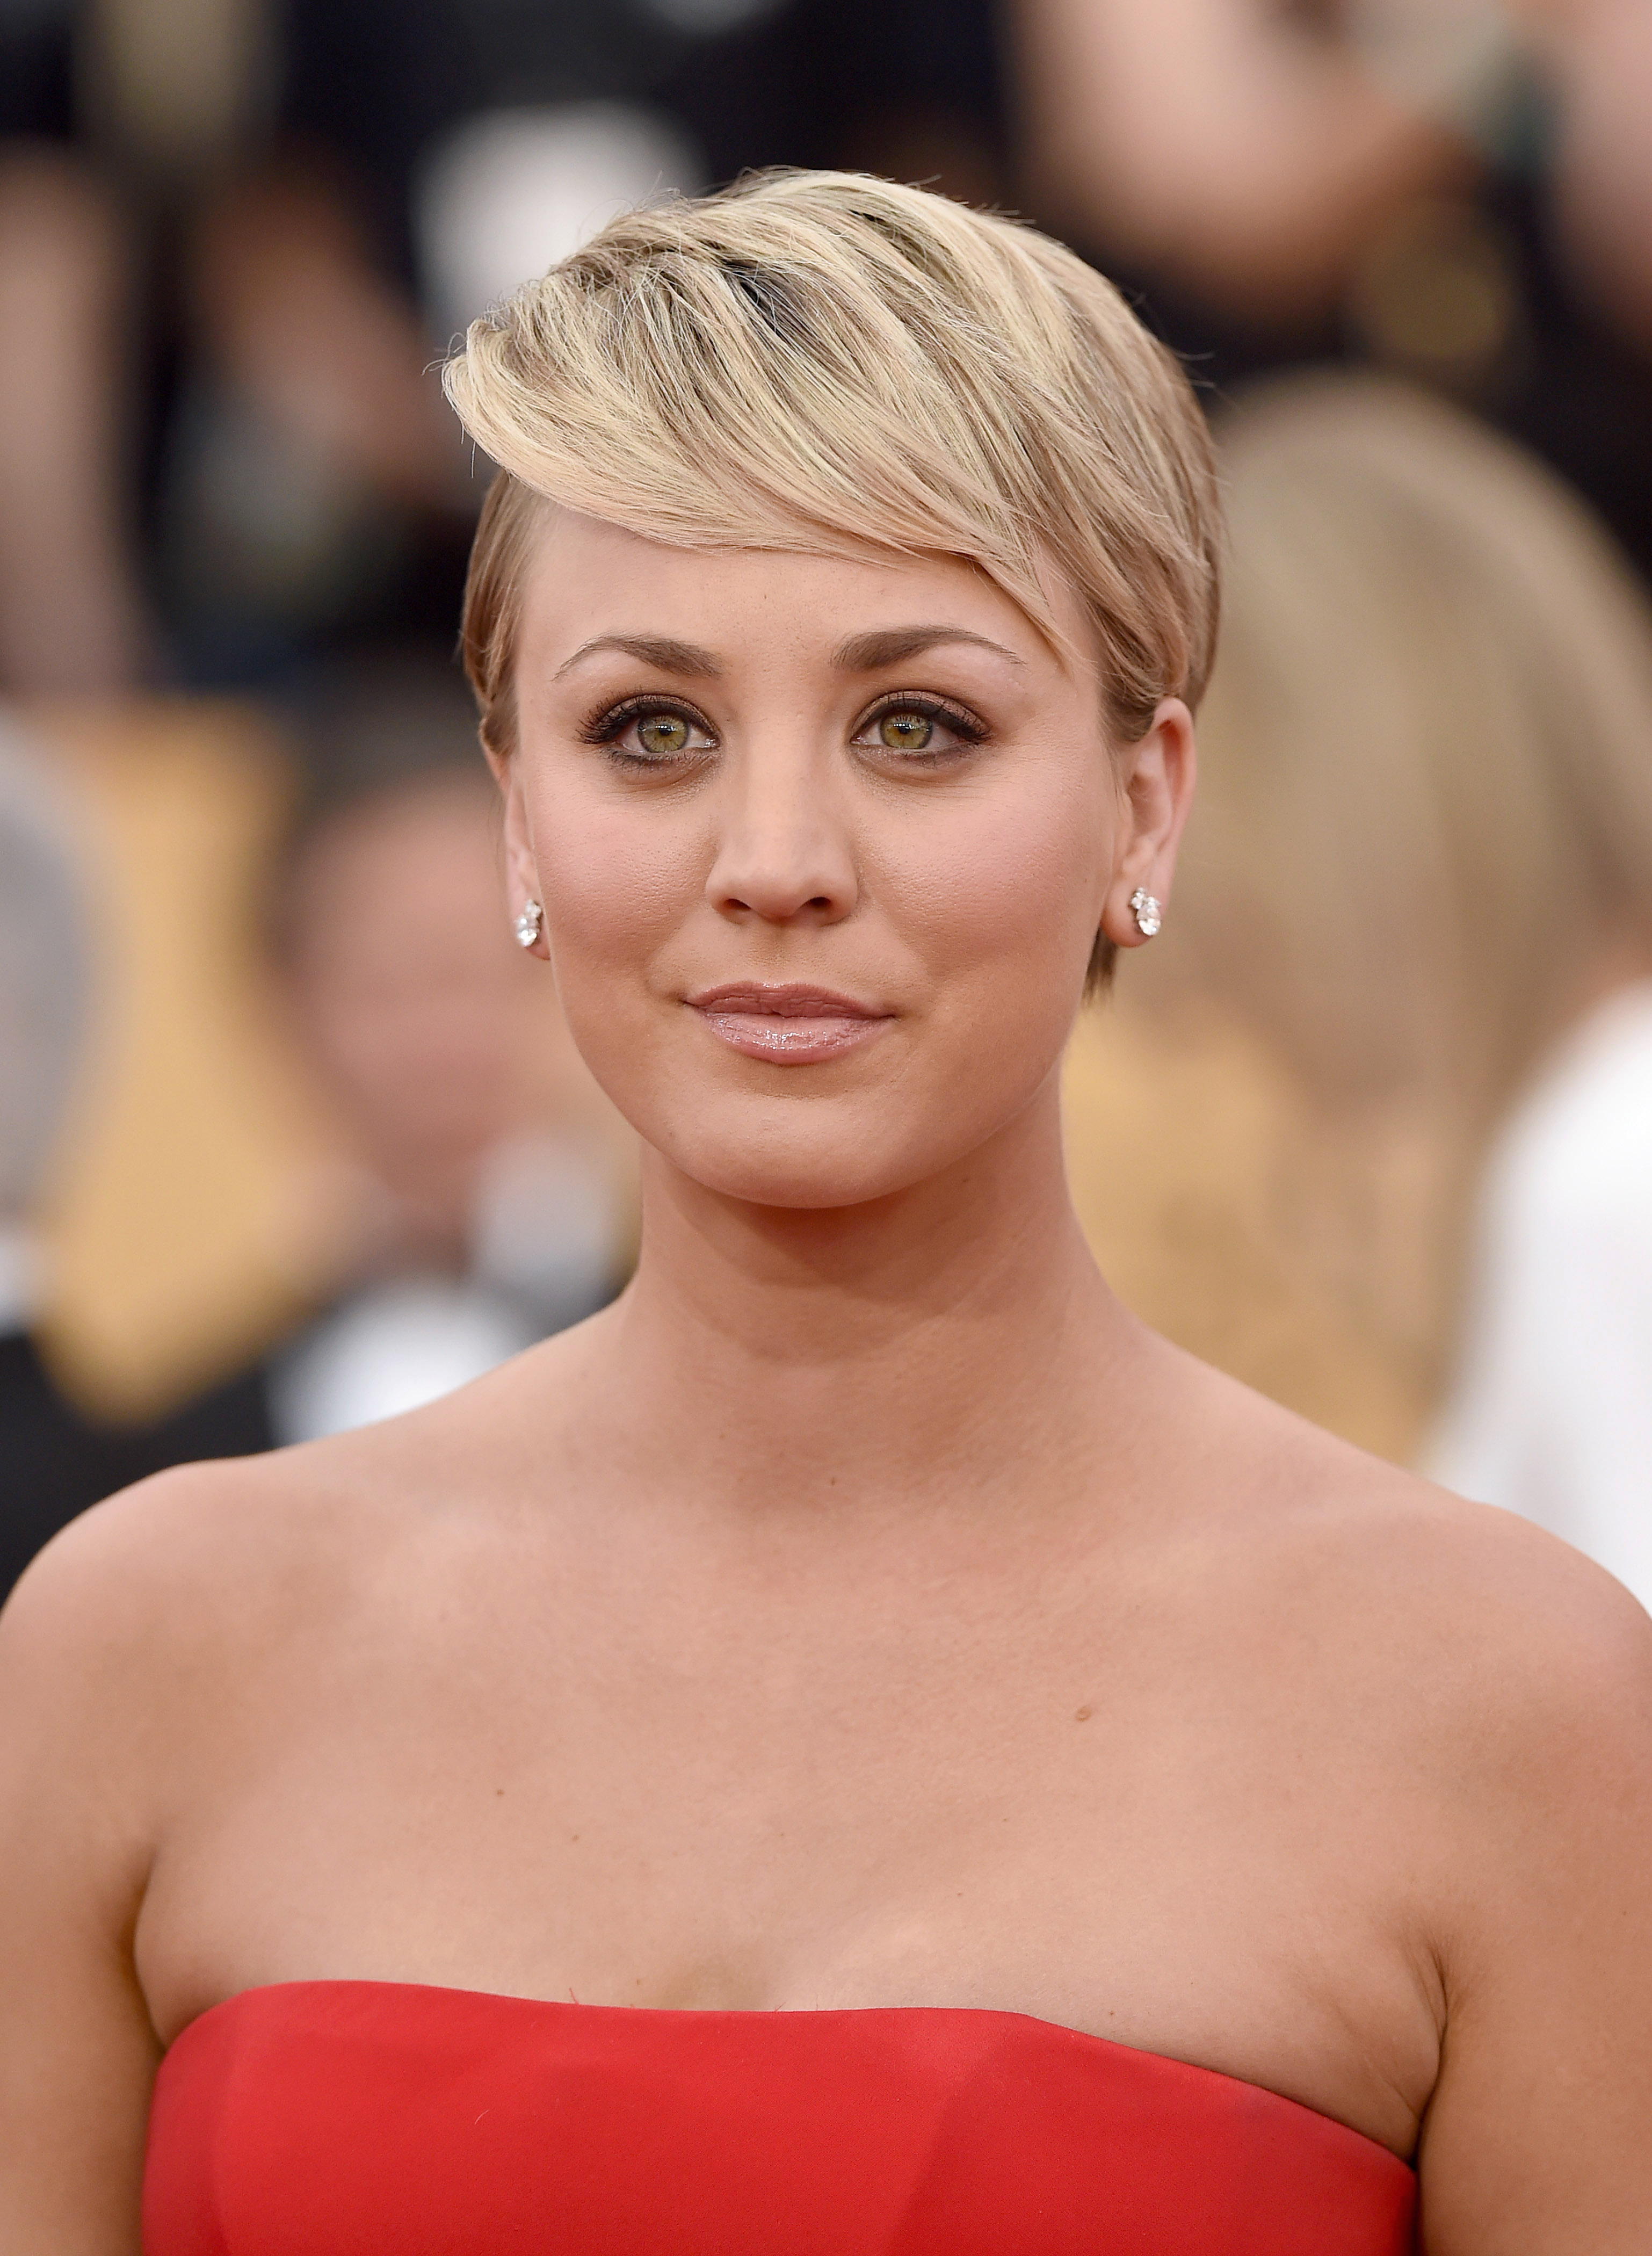 Sensational 34 Pixie Hairstyles And Cuts Celebrities With Pixies Hairstyles For Women Draintrainus